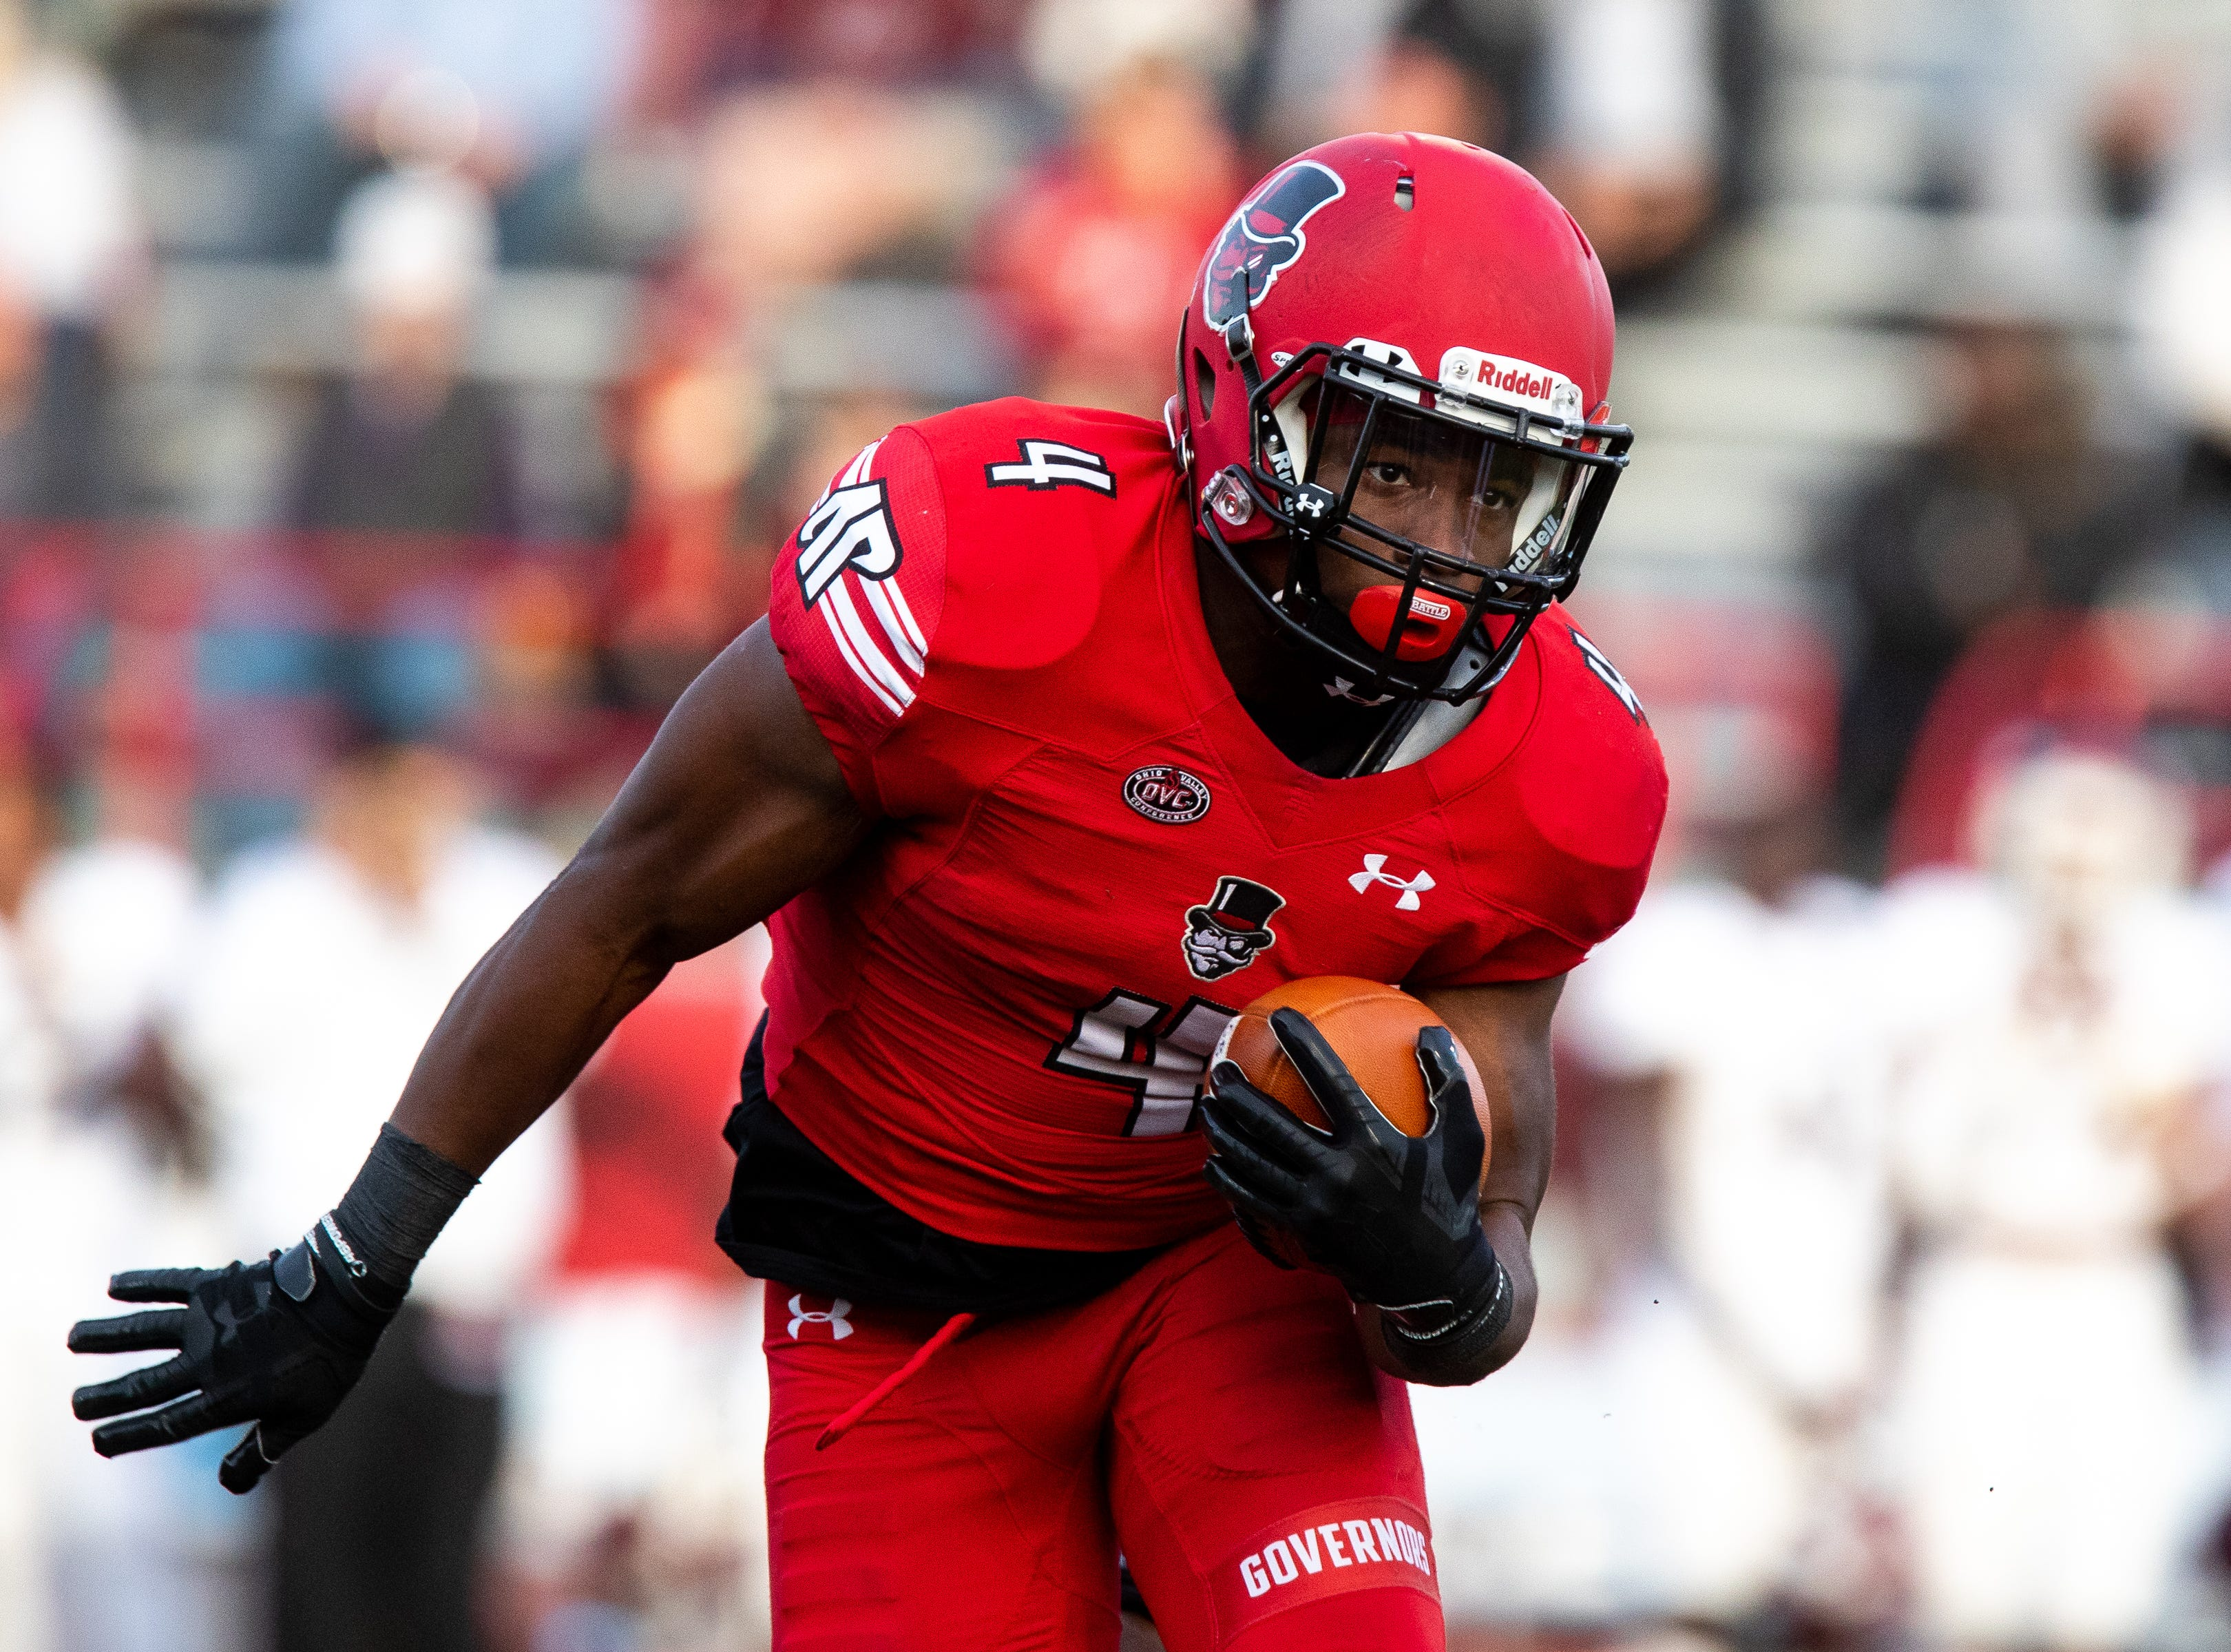 Austin Peay Governors running back Tre Nation (4) runs the ball during the first half at Fortera Stadium Saturday, Nov. 3, 2018, in Clarksville, Tenn.